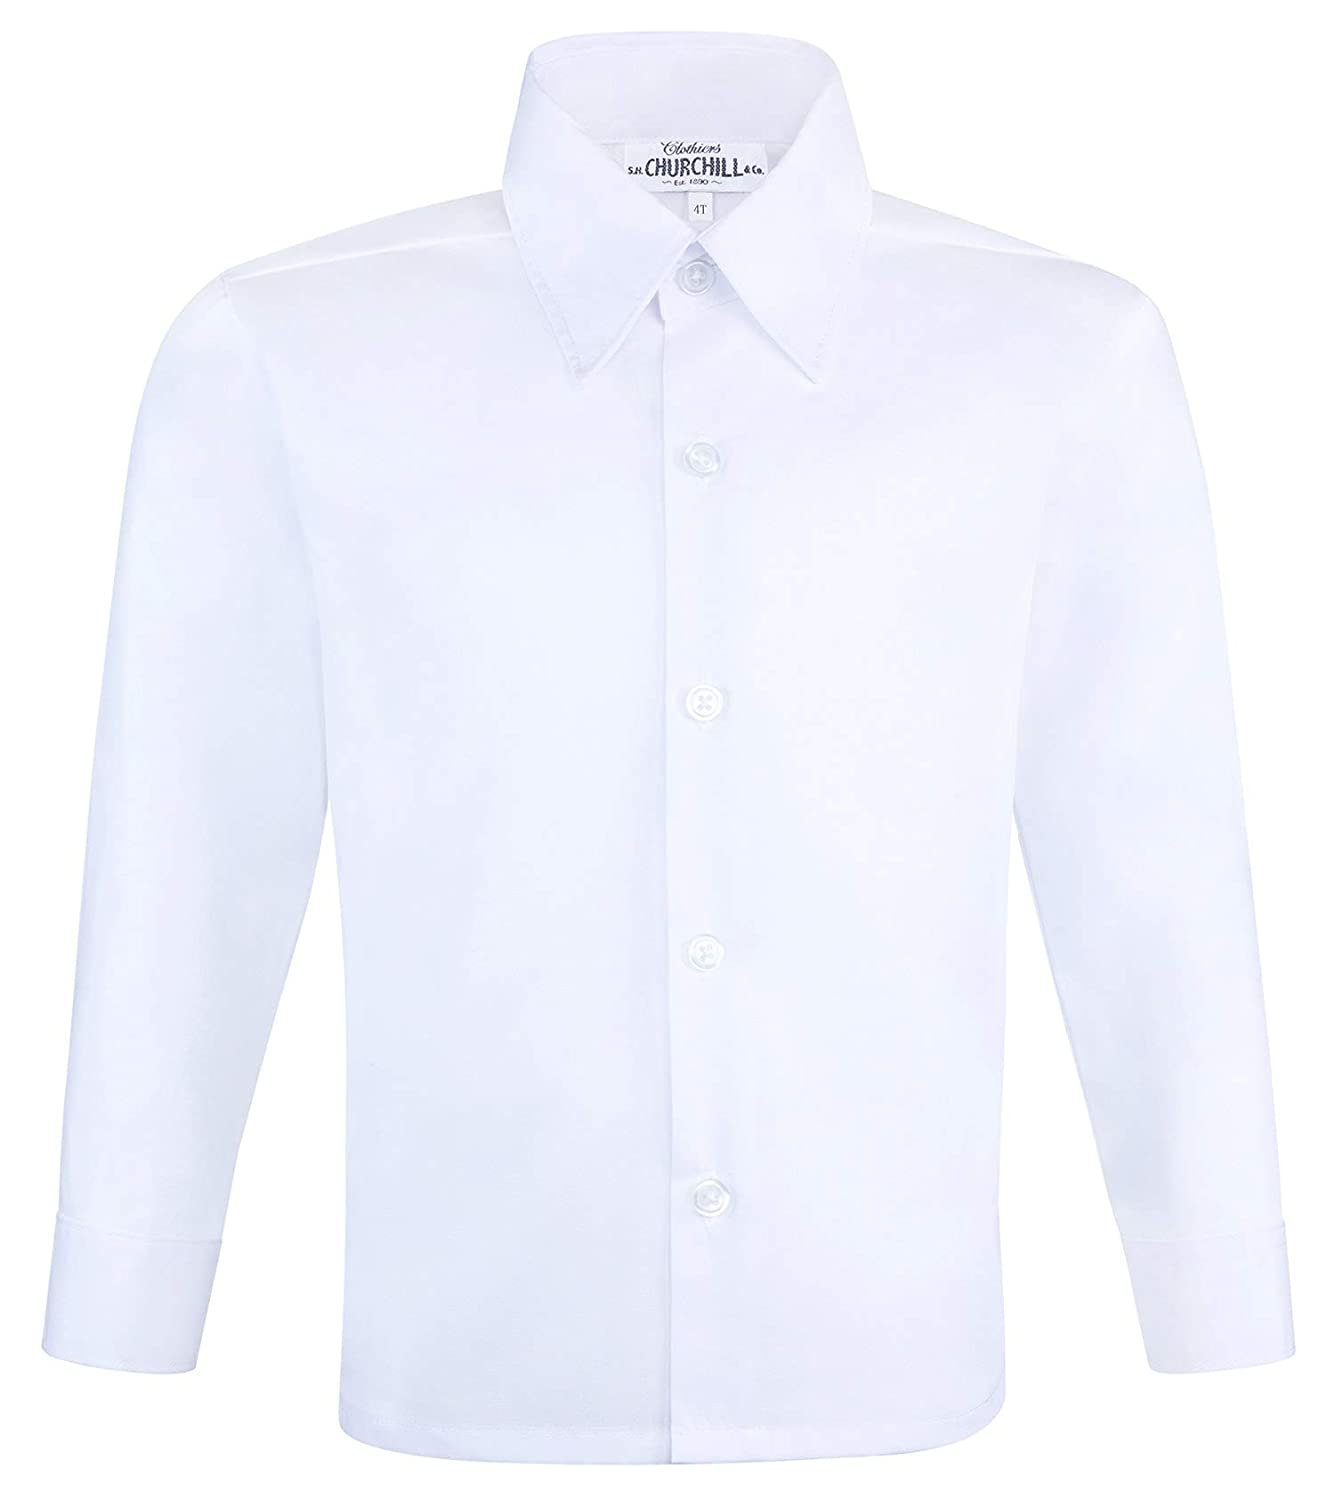 S.H. Churchill Co. Boy's White Dress Shirt